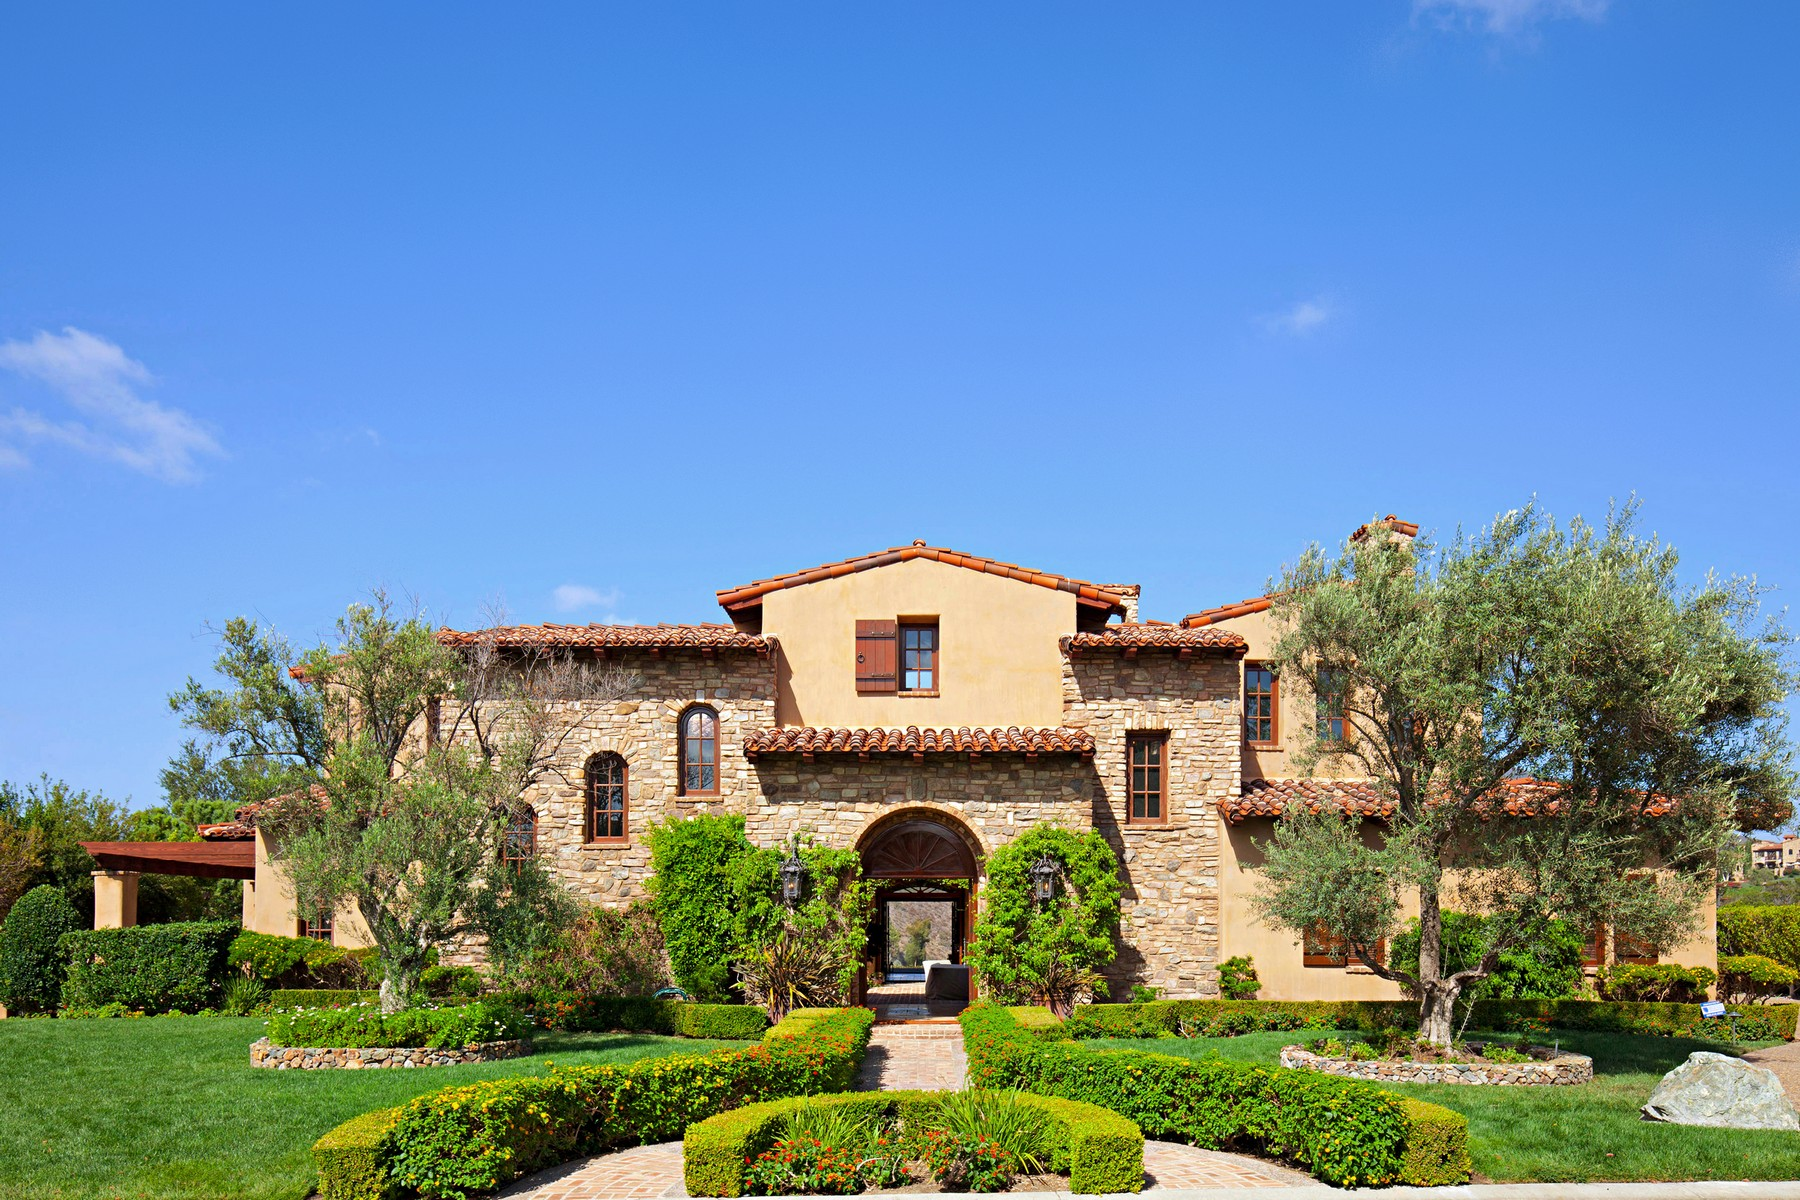 Additional photo for property listing at 18471 Calle Tramonto  Rancho Santa Fe, California 92091 Estados Unidos